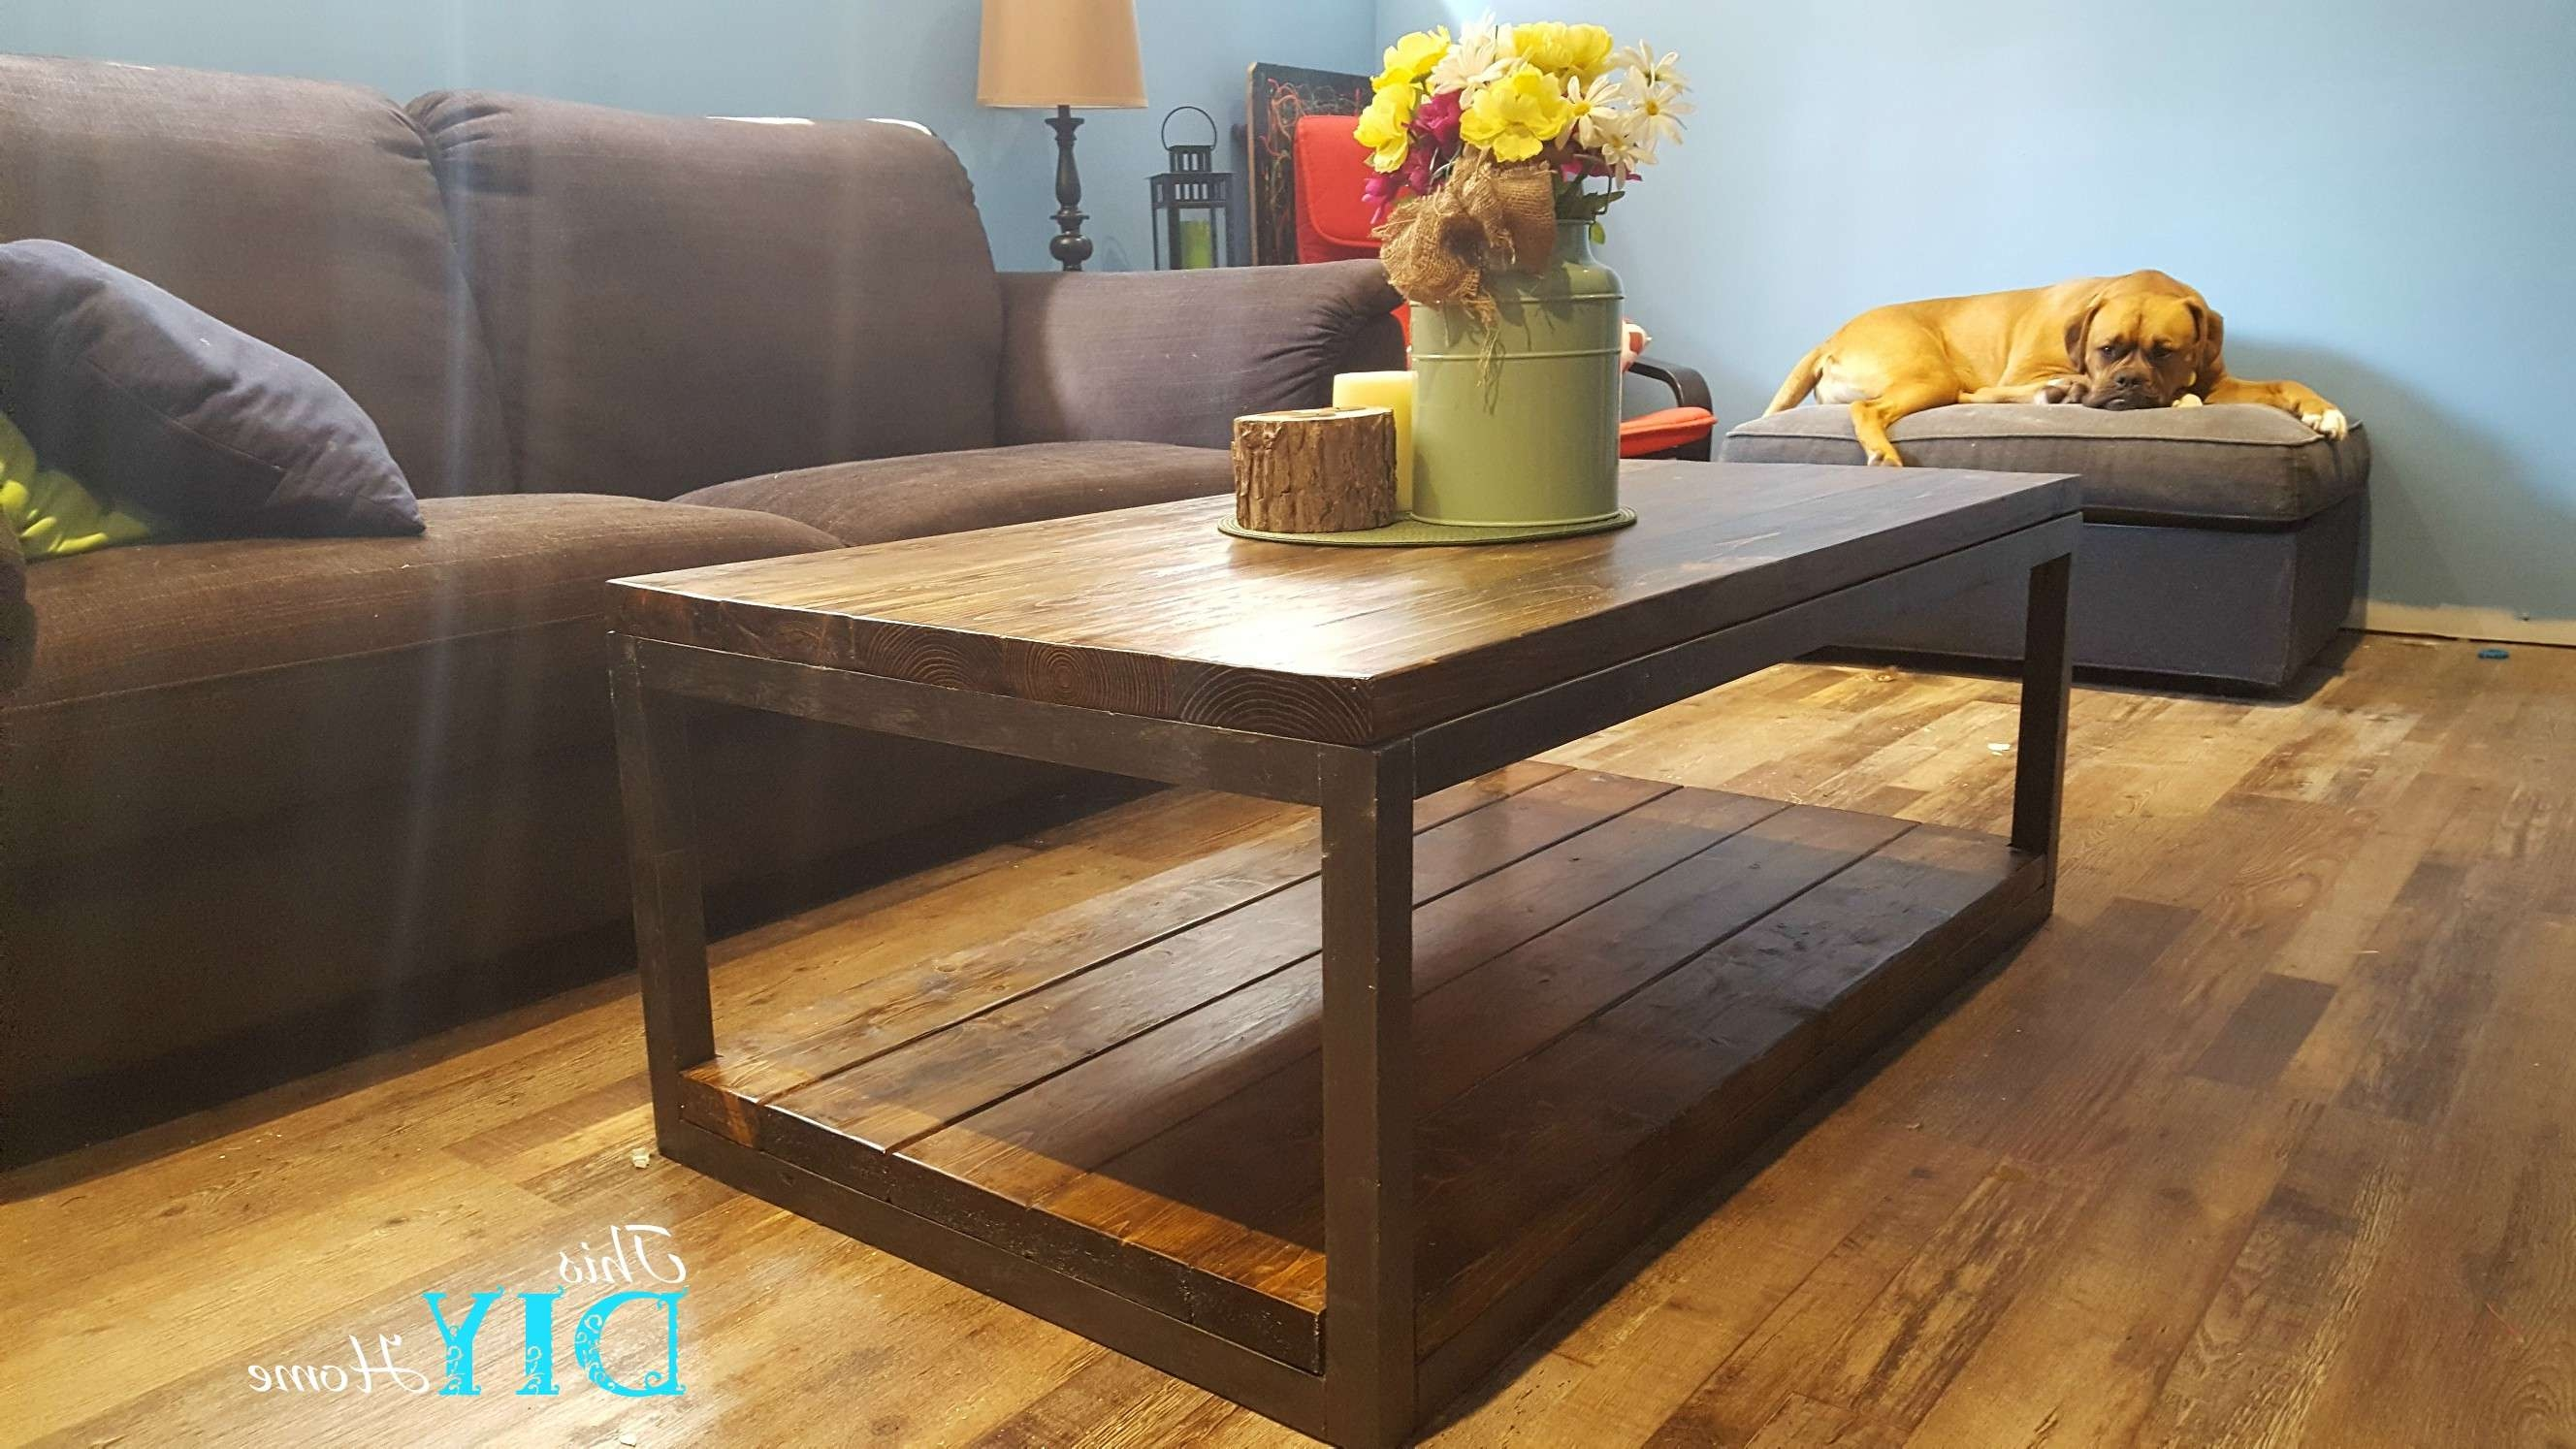 Coffee Tables : Good Looking Antique Style Coffee Tables Vintage With Regard To Well Known Low Industrial Coffee Tables (View 10 of 20)